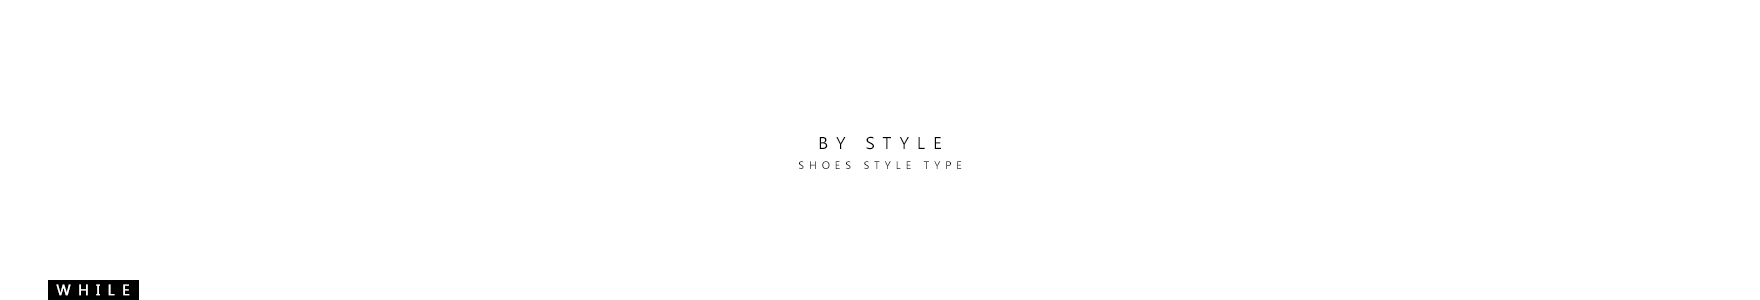 BY STYLE